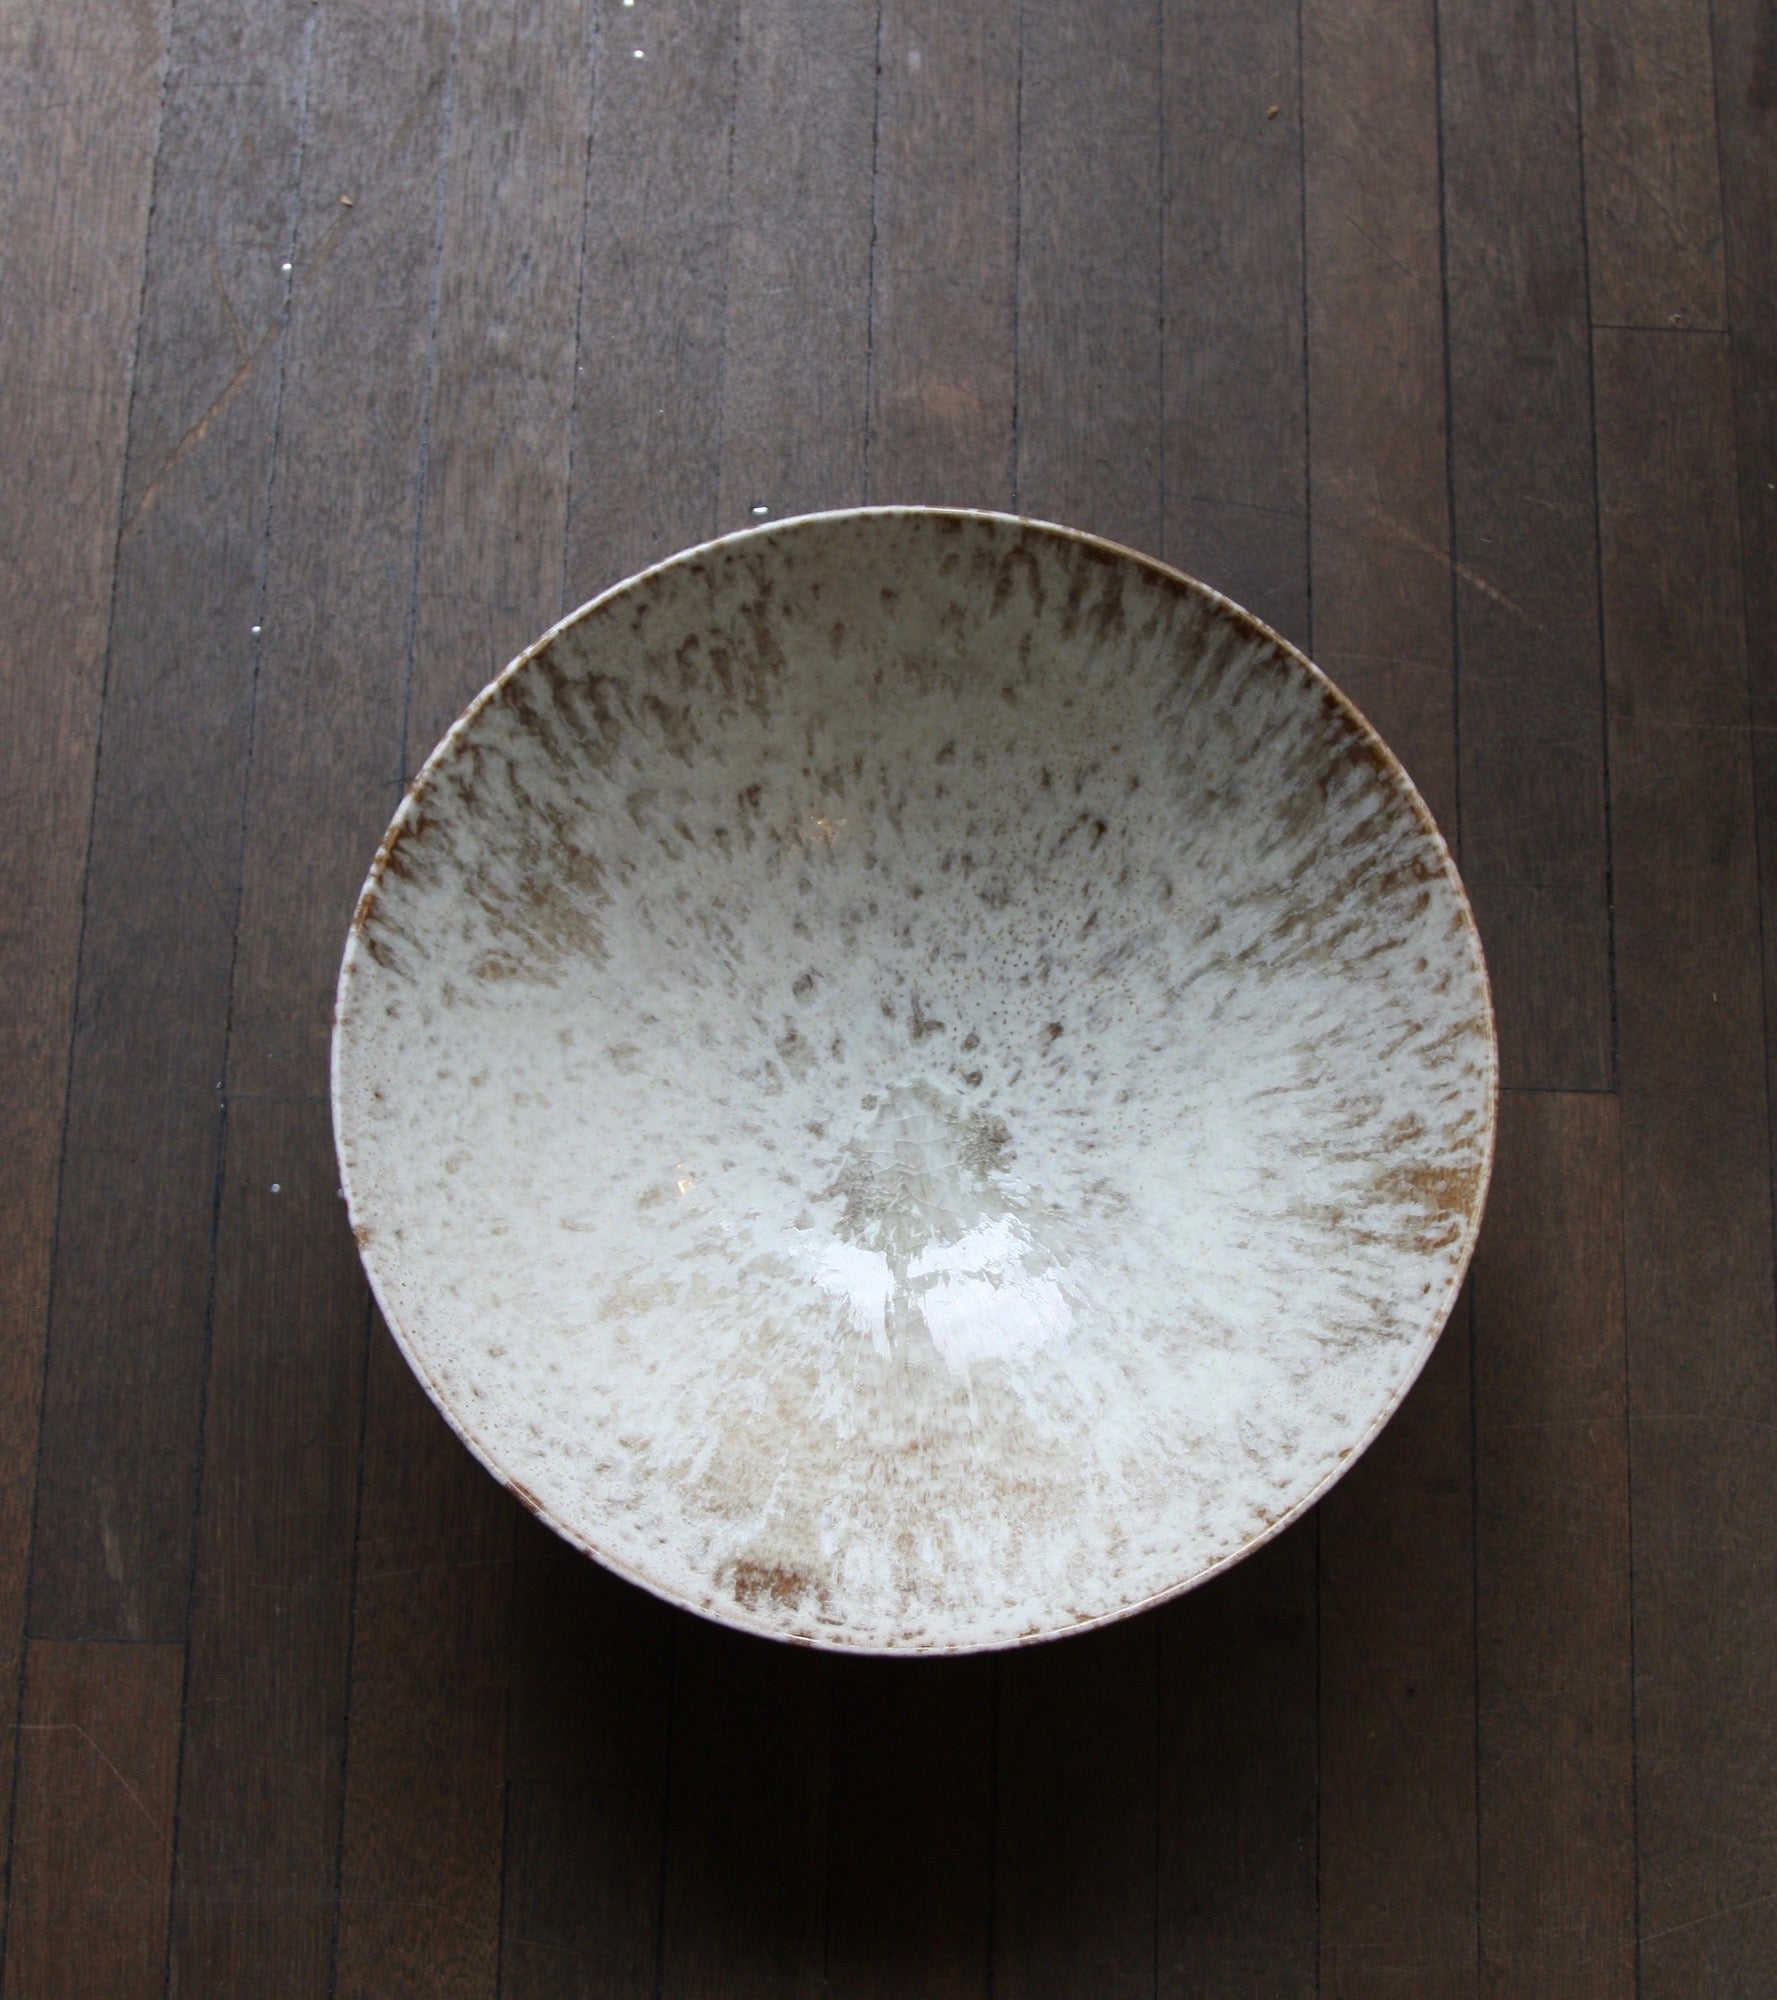 Enormous Tea Bowl Shaped BowlBrown & White Glaze   Kasper Würtz - Image 3